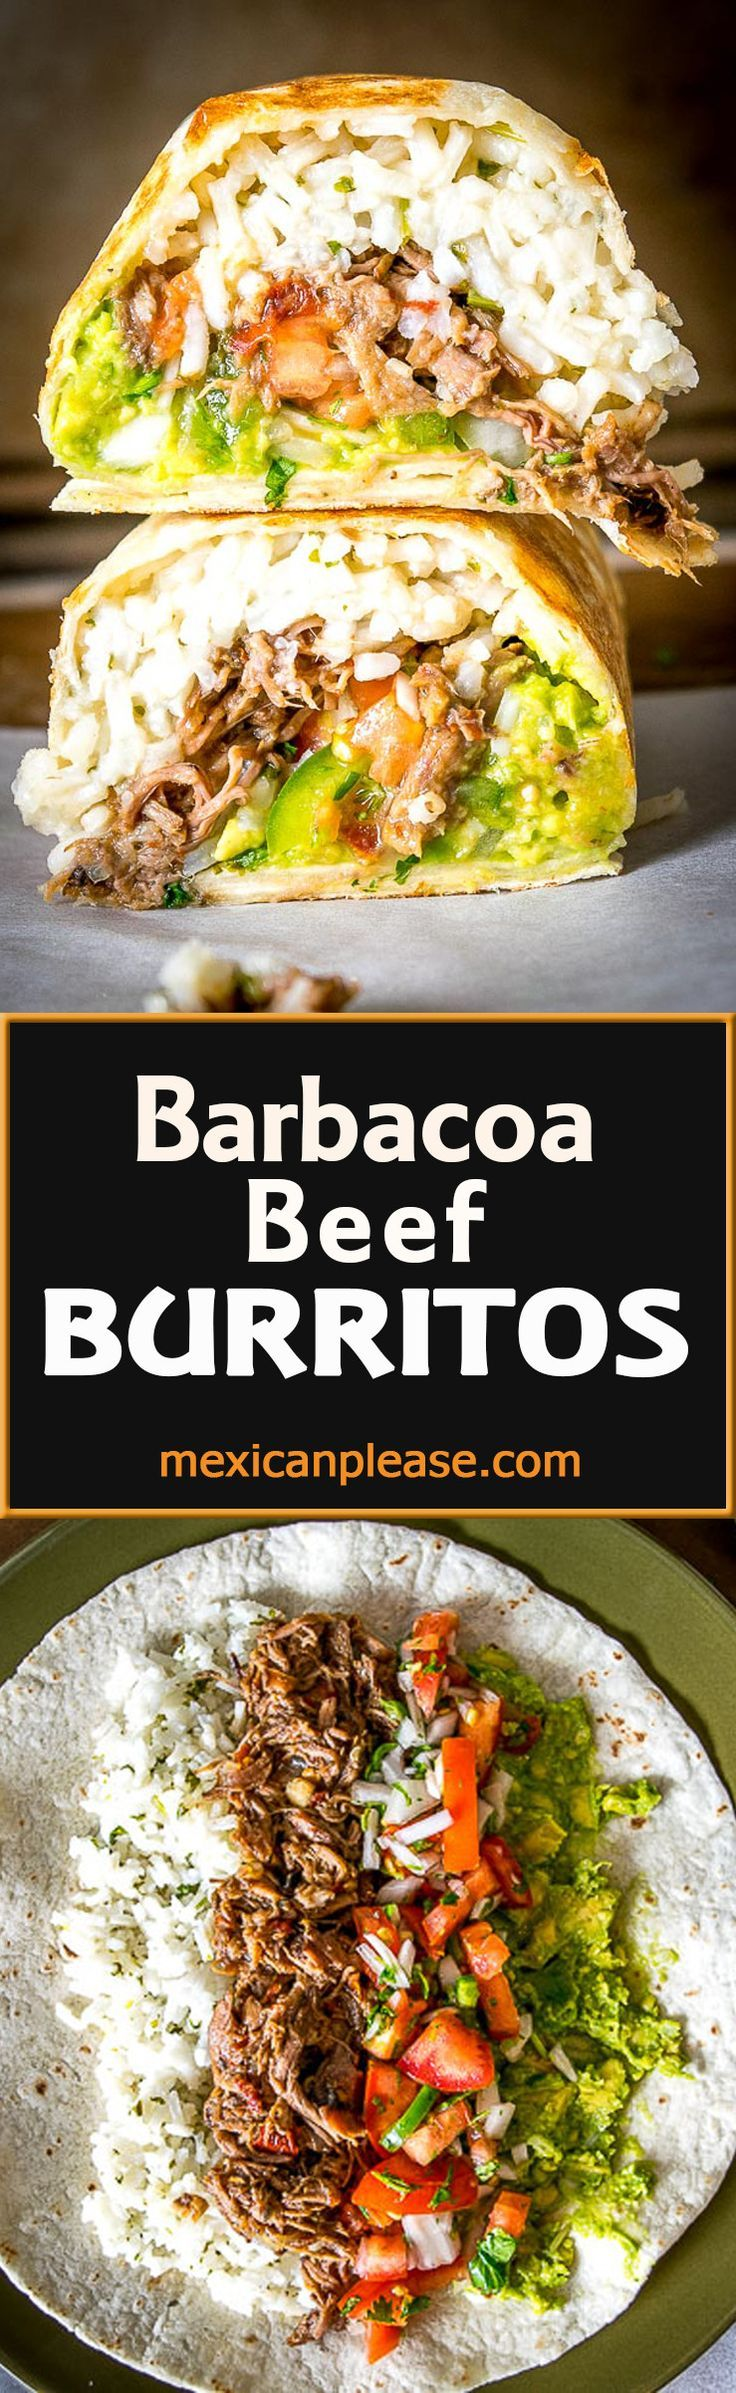 Freshly made Pico de Gallo combines with Barbacoa Beef and Guacamole to make these Barbacoa Beef Burritos sing!  Slow cooker barbacoa works great but feel free to use any shredded beef you have on hand.  So good!  mexicanplease.com